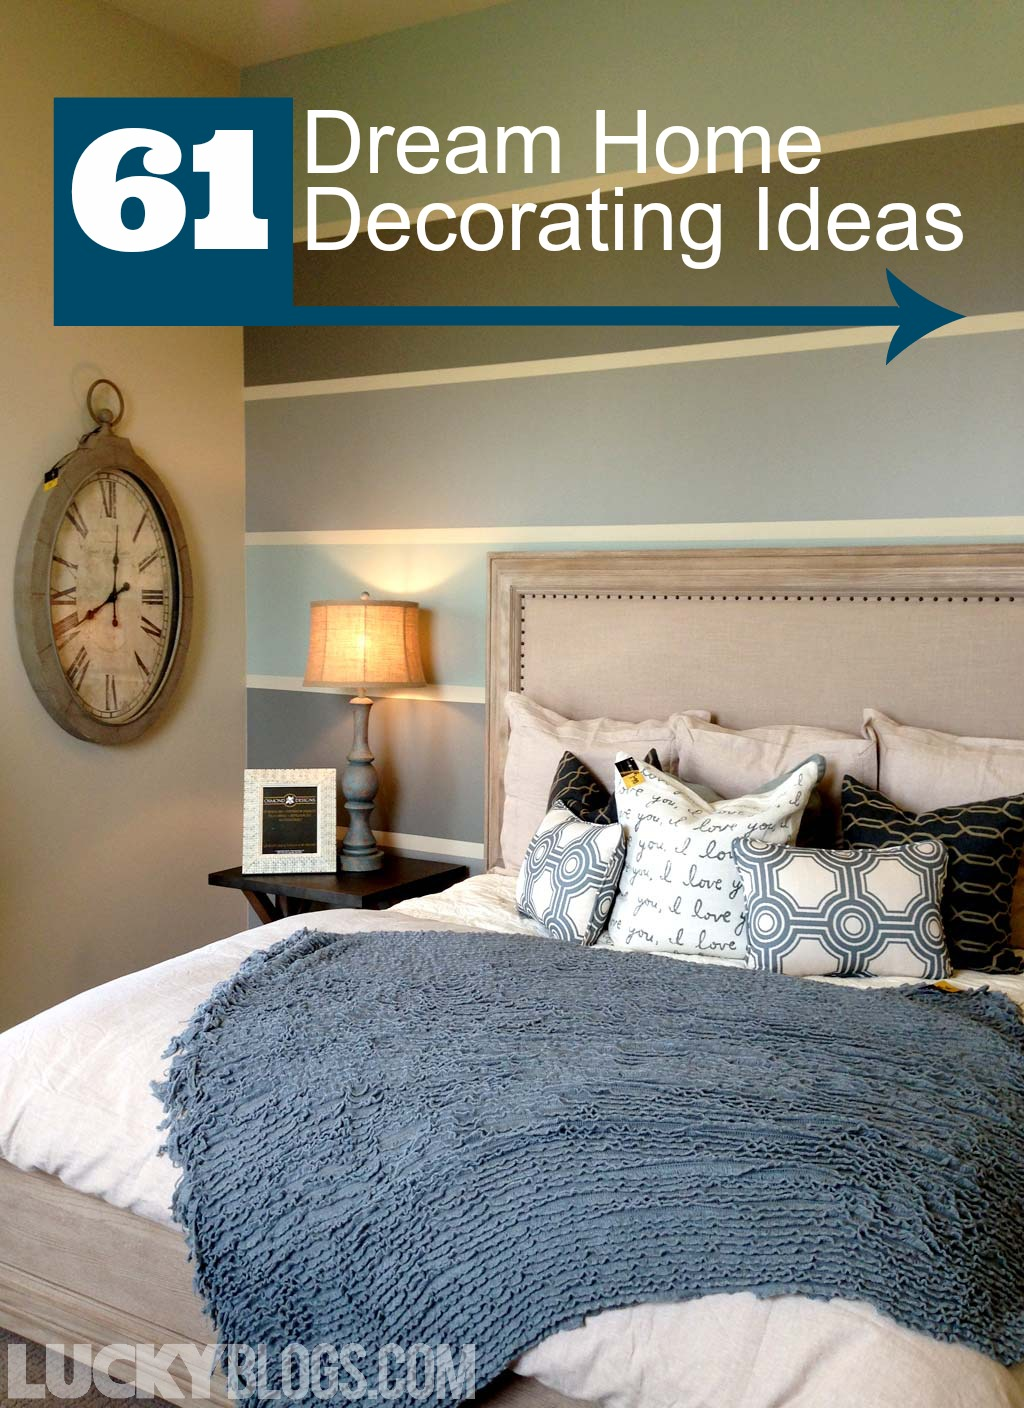 61 Dream Home Decorating Ideas -